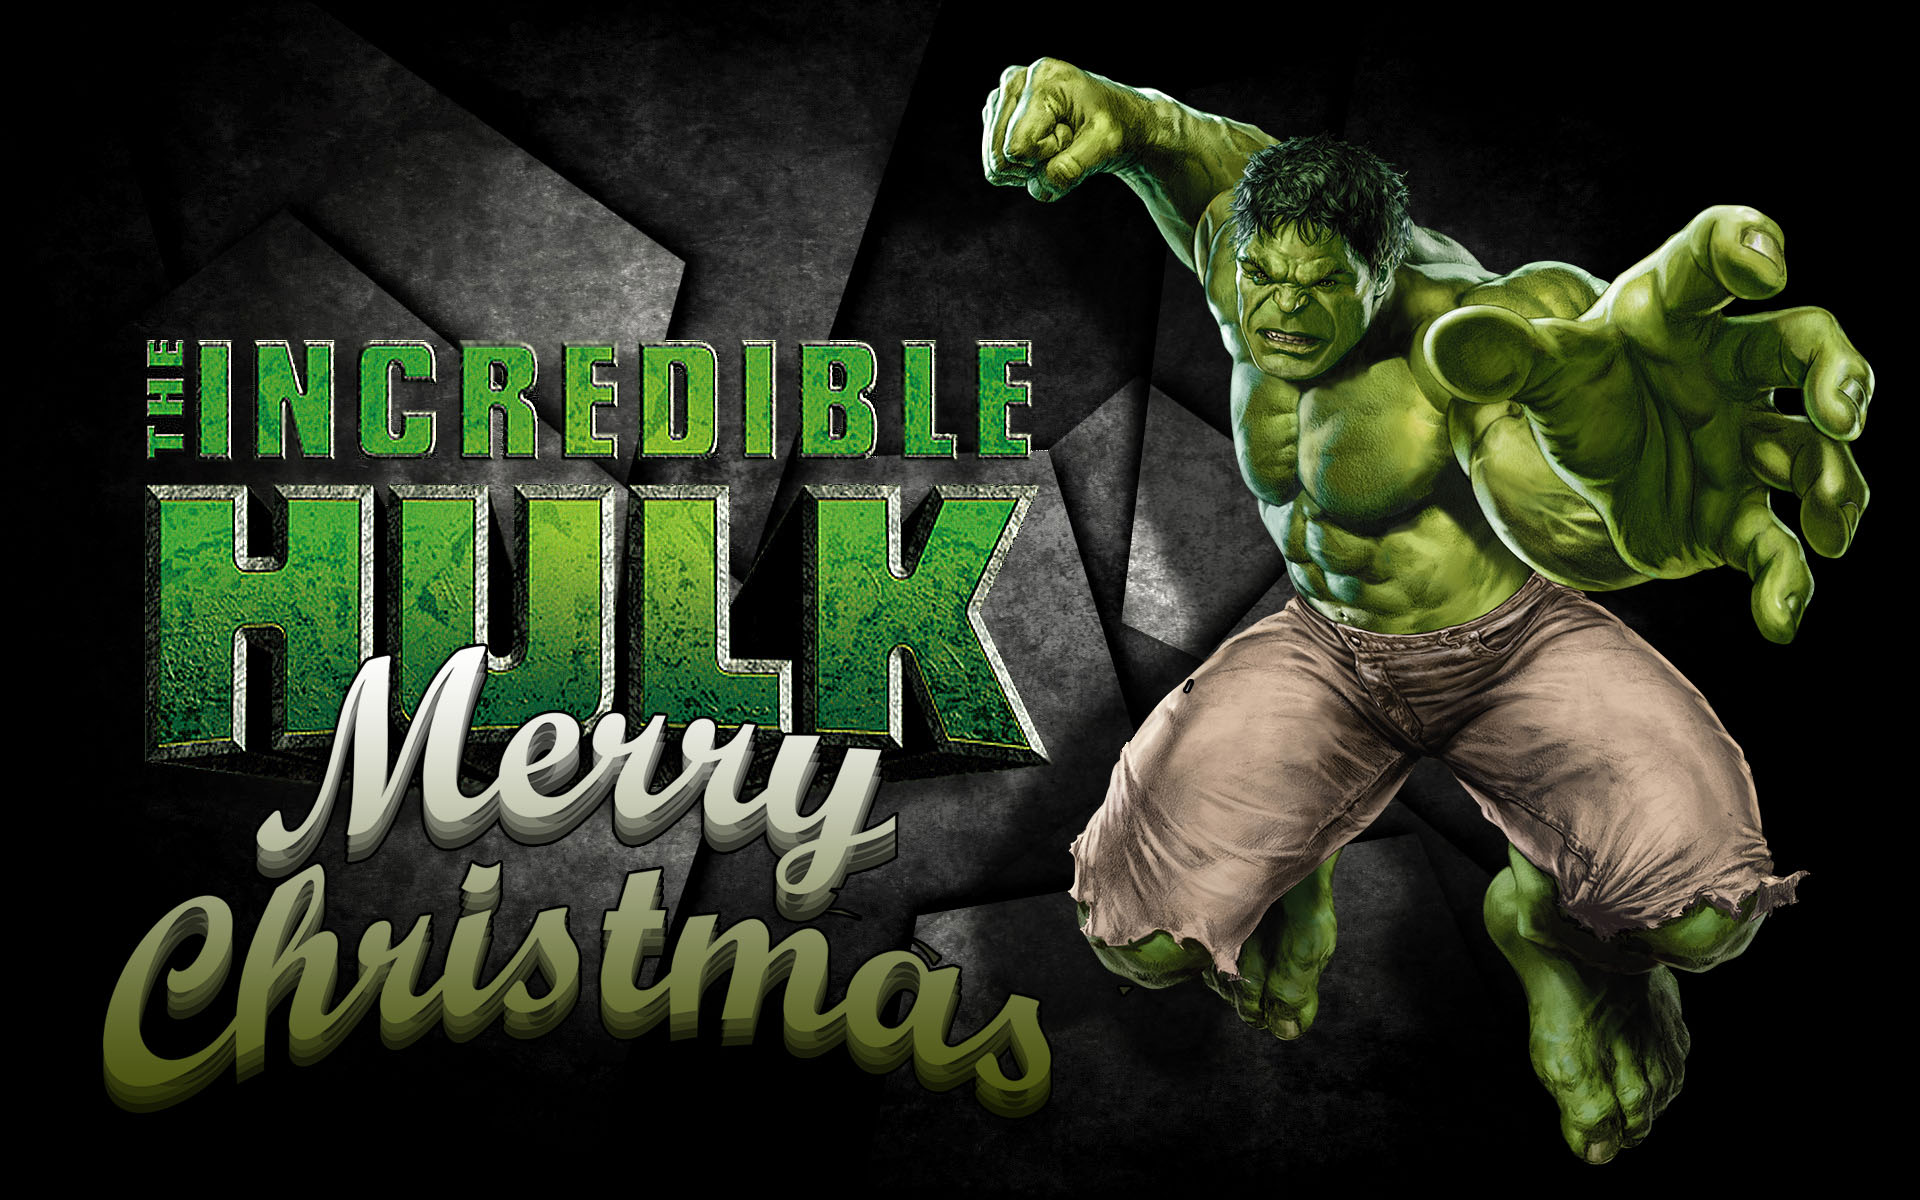 happy merry christmas incredible hulk marvel avenger superhero pc hd wallpaper